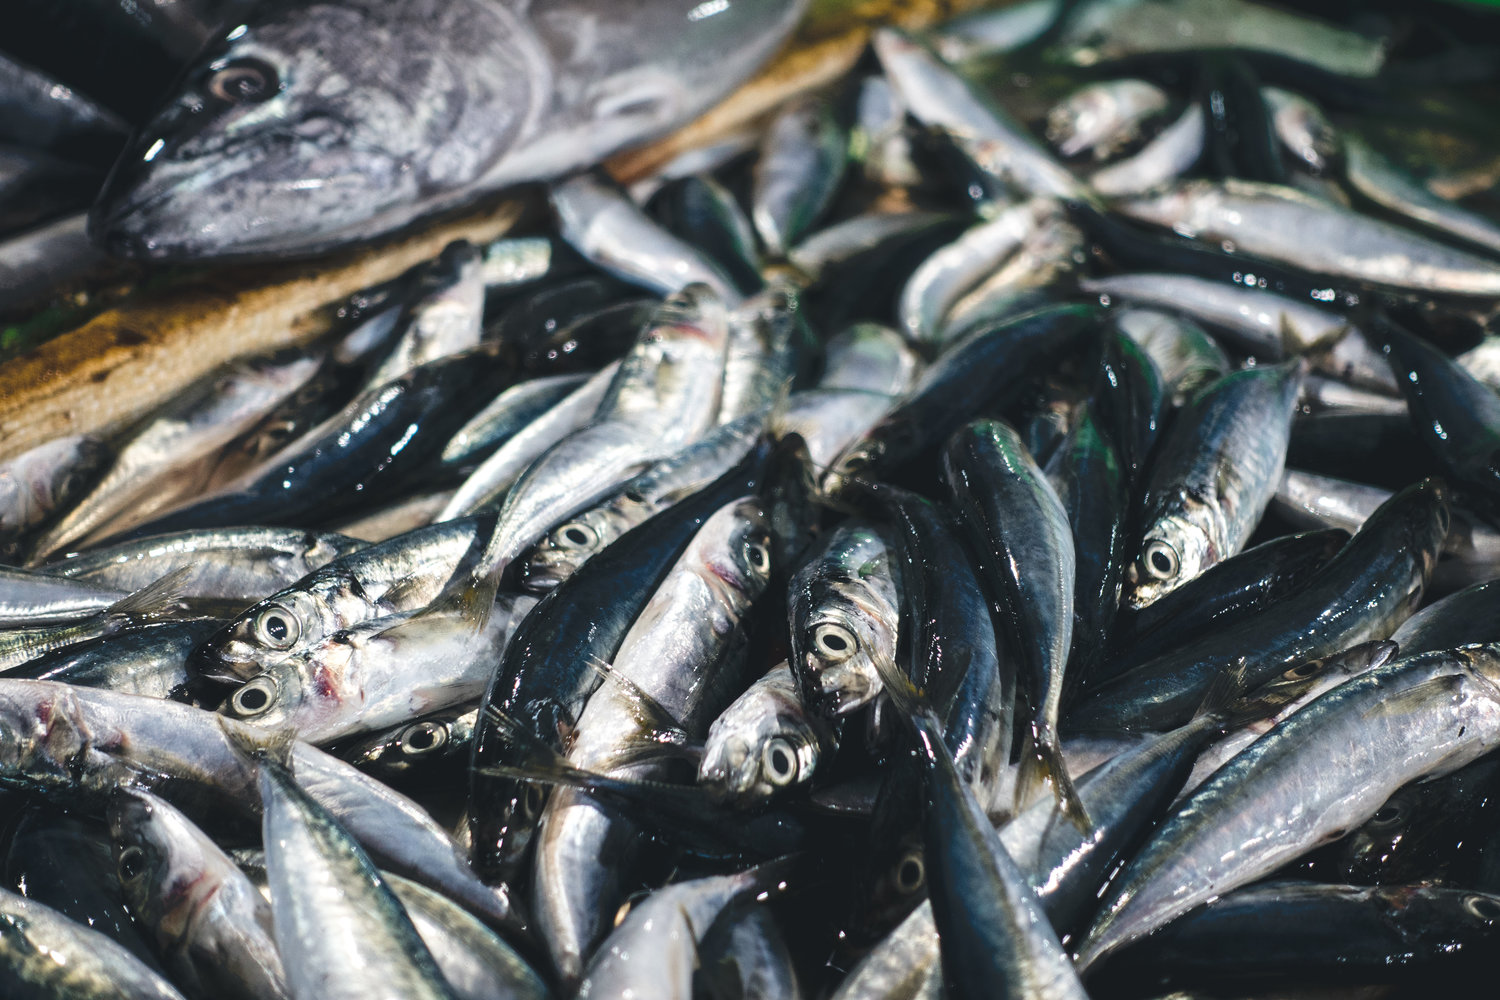 Toxicity of Fish and Seafood